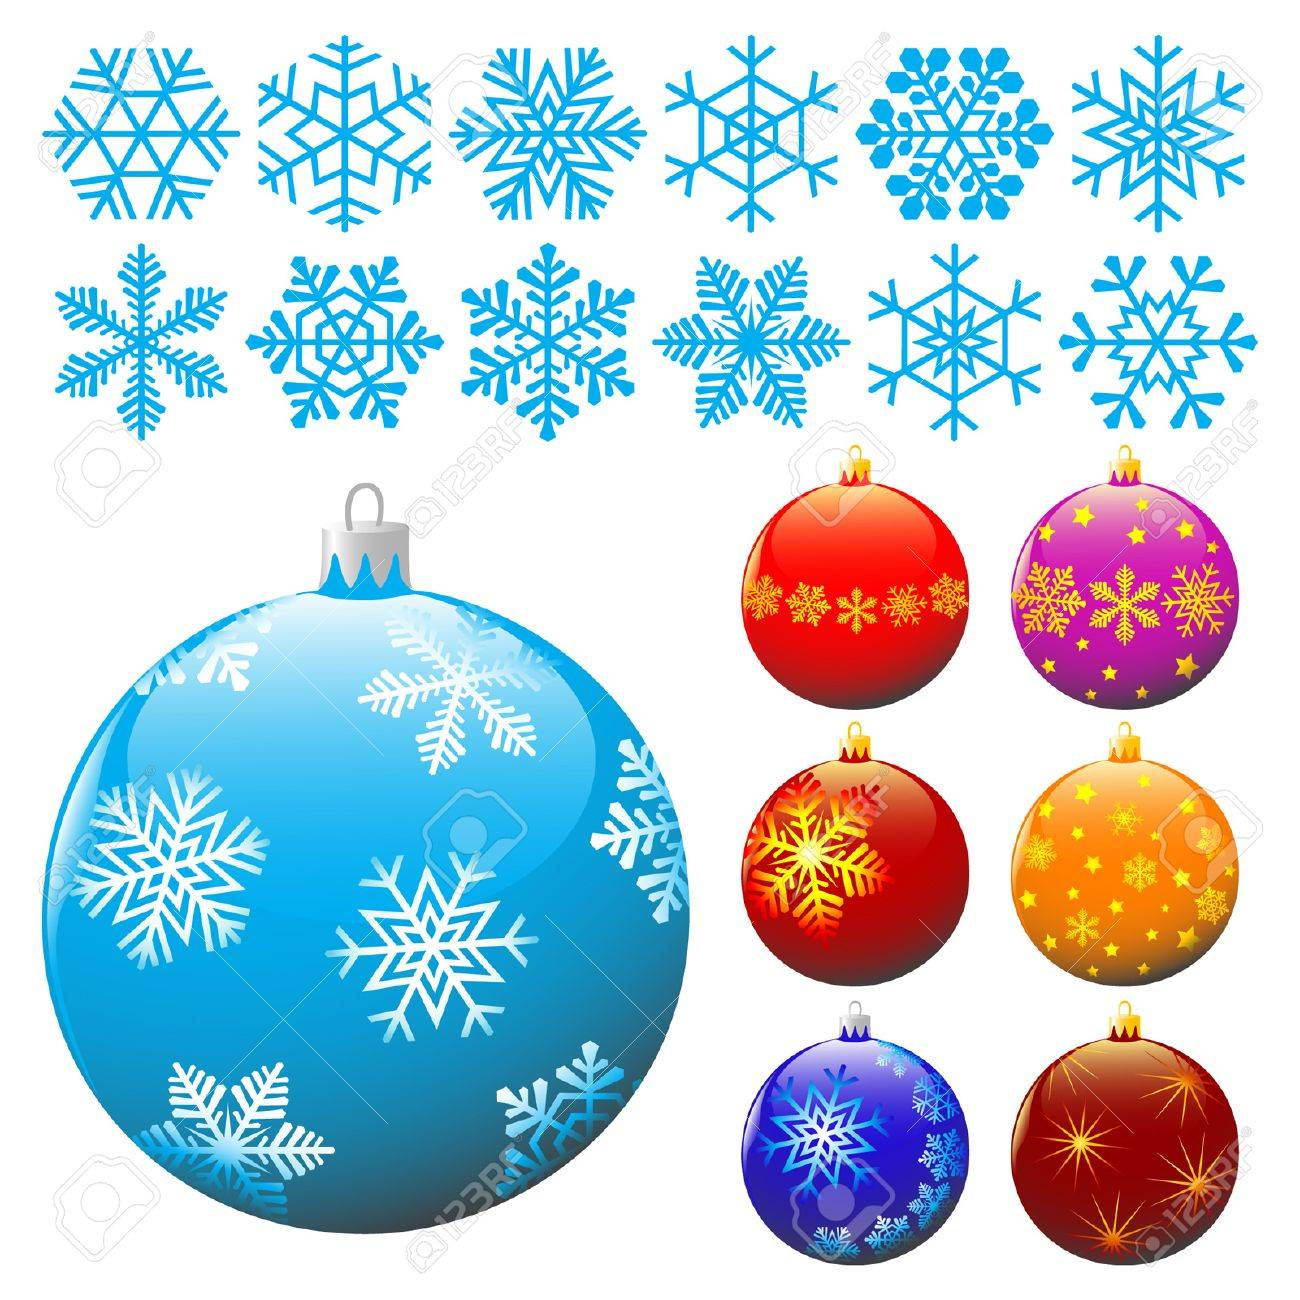 Collection of snowflakes and christmas balls. Stock Vector - 5168255